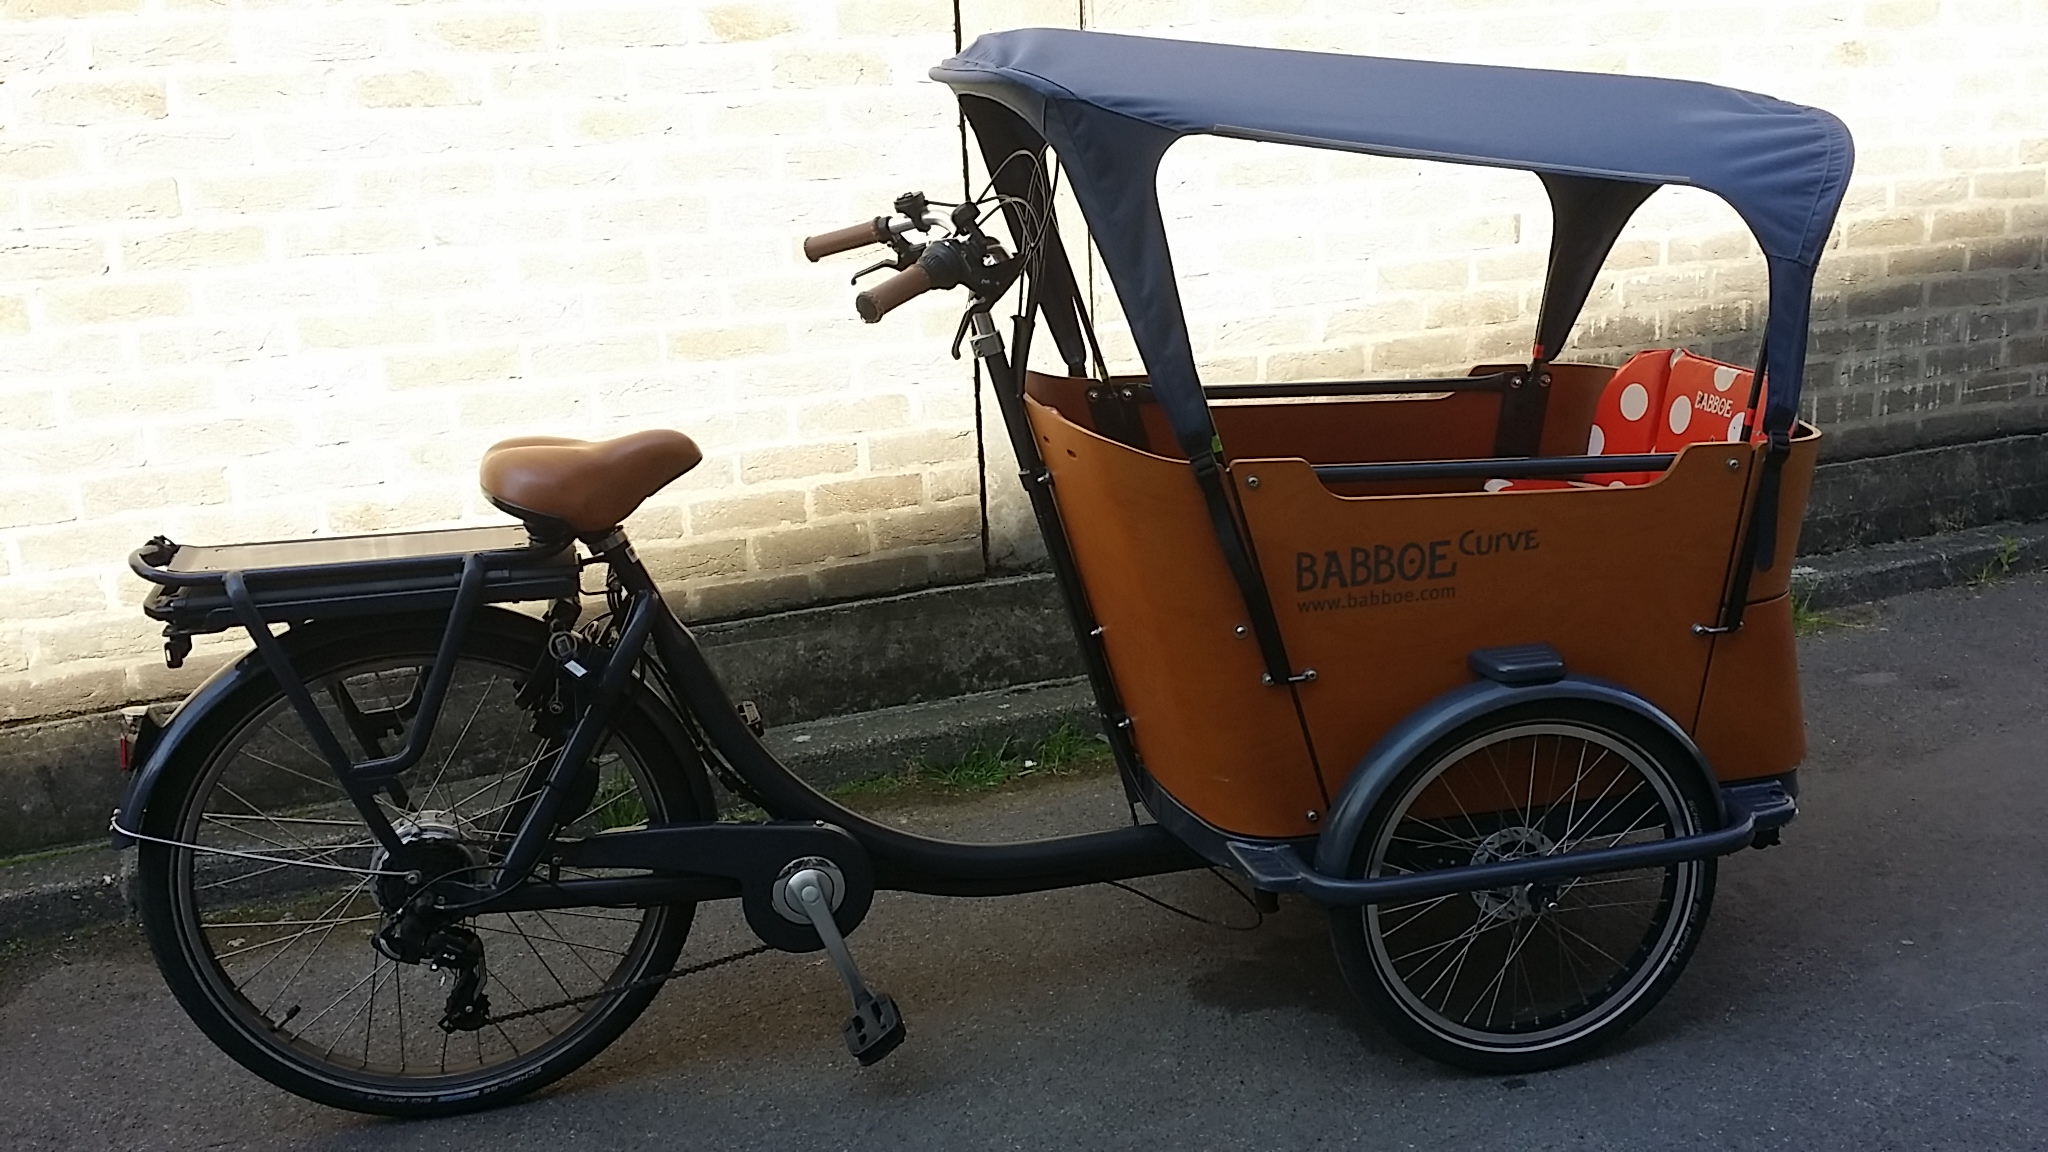 londongreencycles used Babboe Curve E